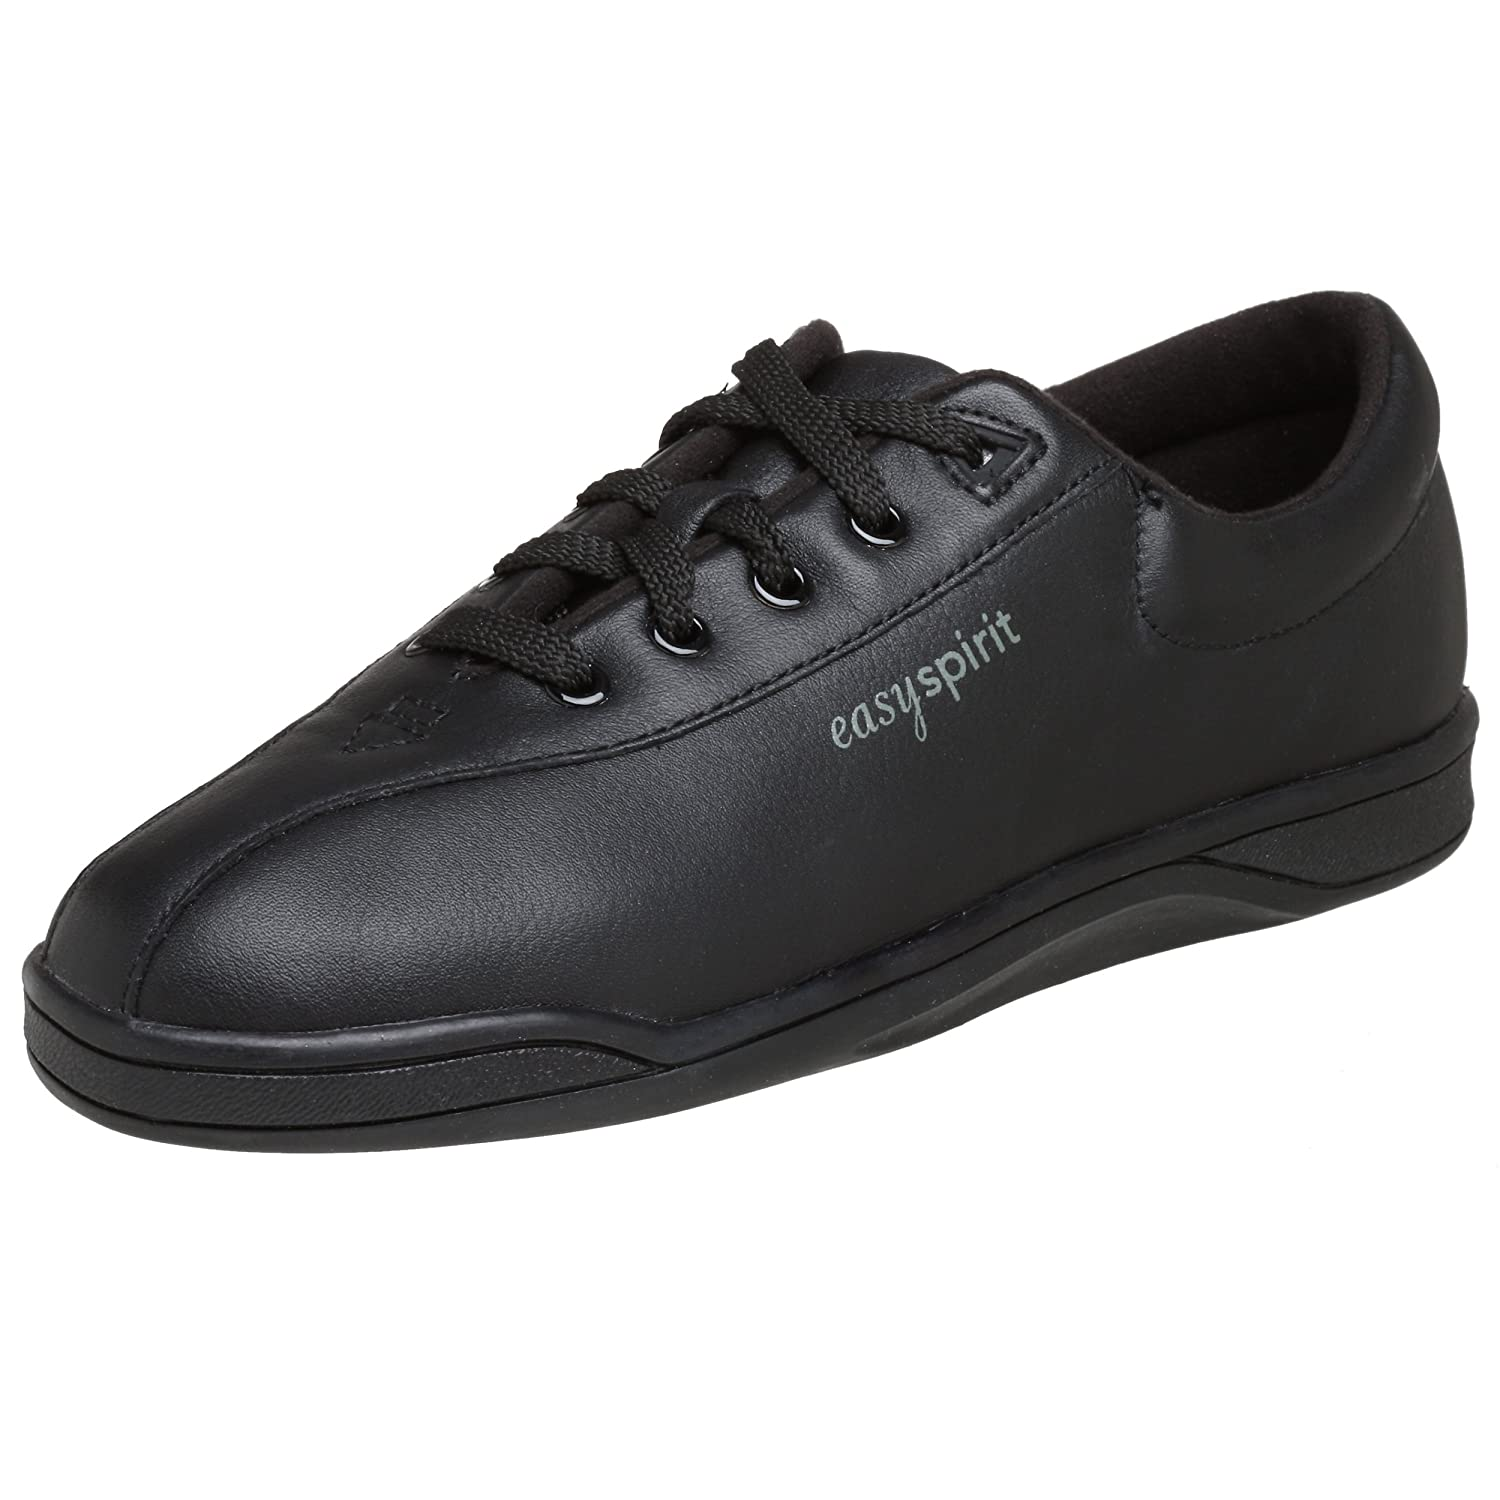 Easy Spirit AP1 Sport Walking Shoe B000F5X0R0 4.5 B(M) US|Black Leather